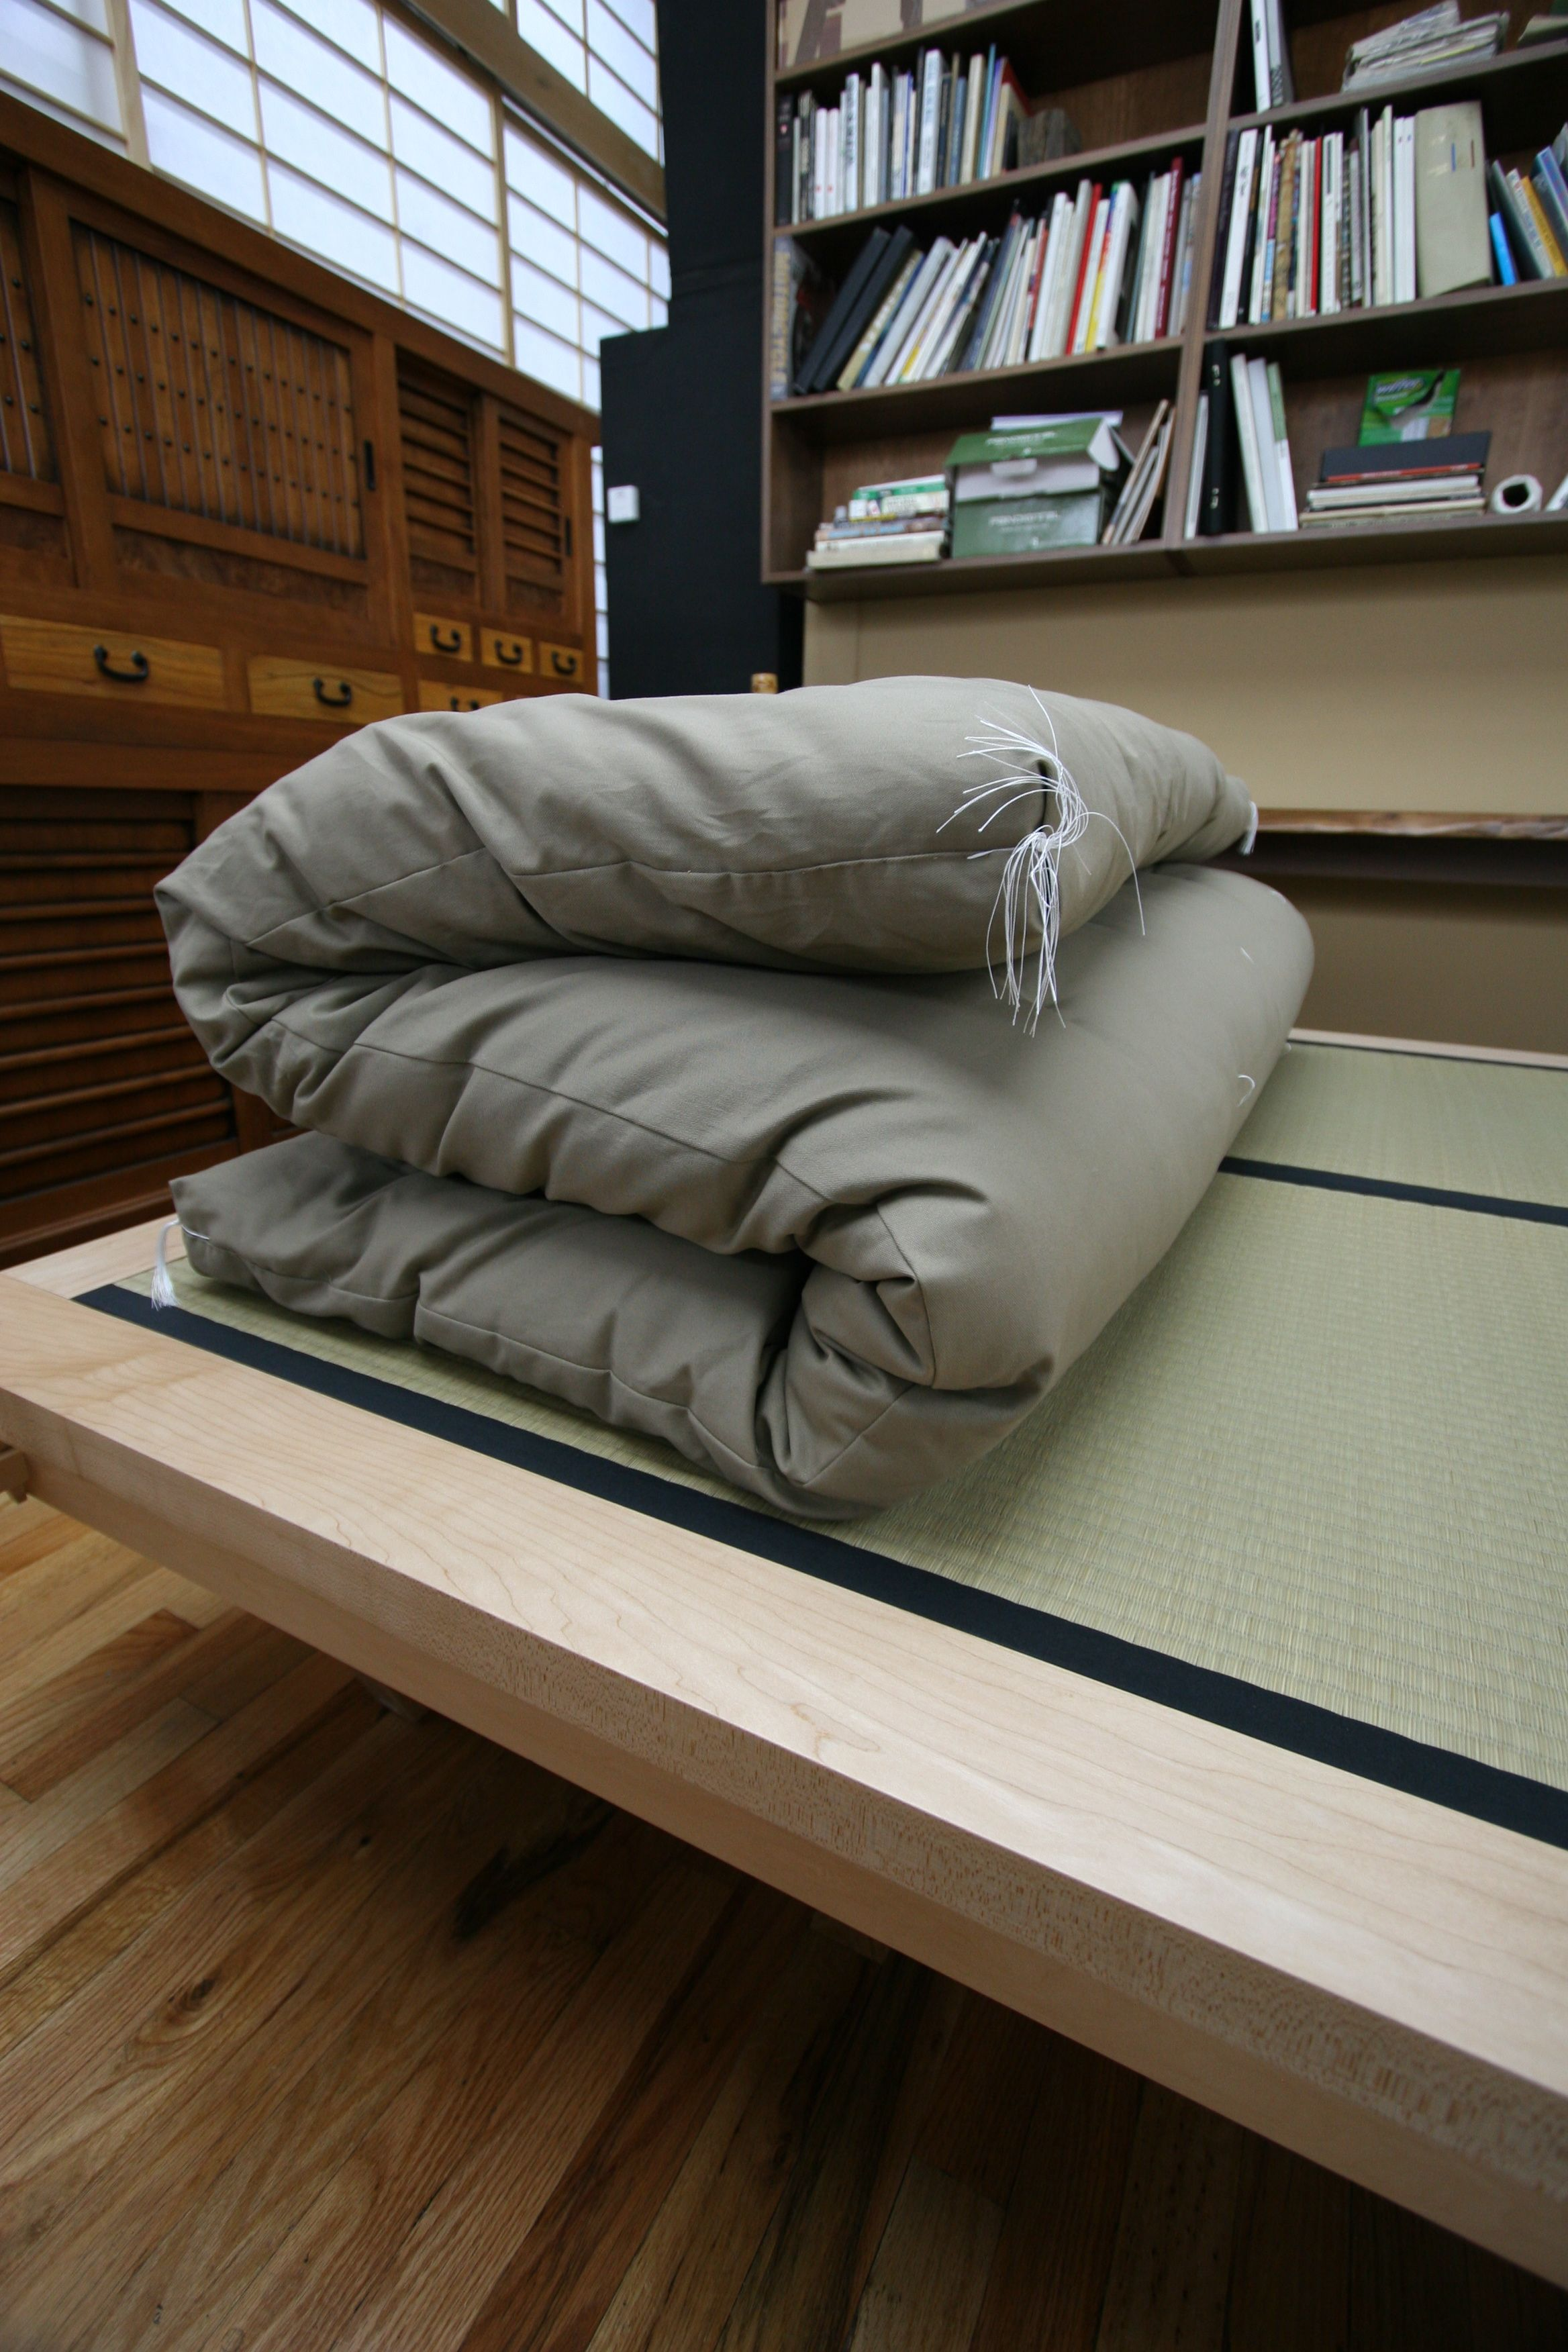 Japanese futon and tatami an alternative to western mattress